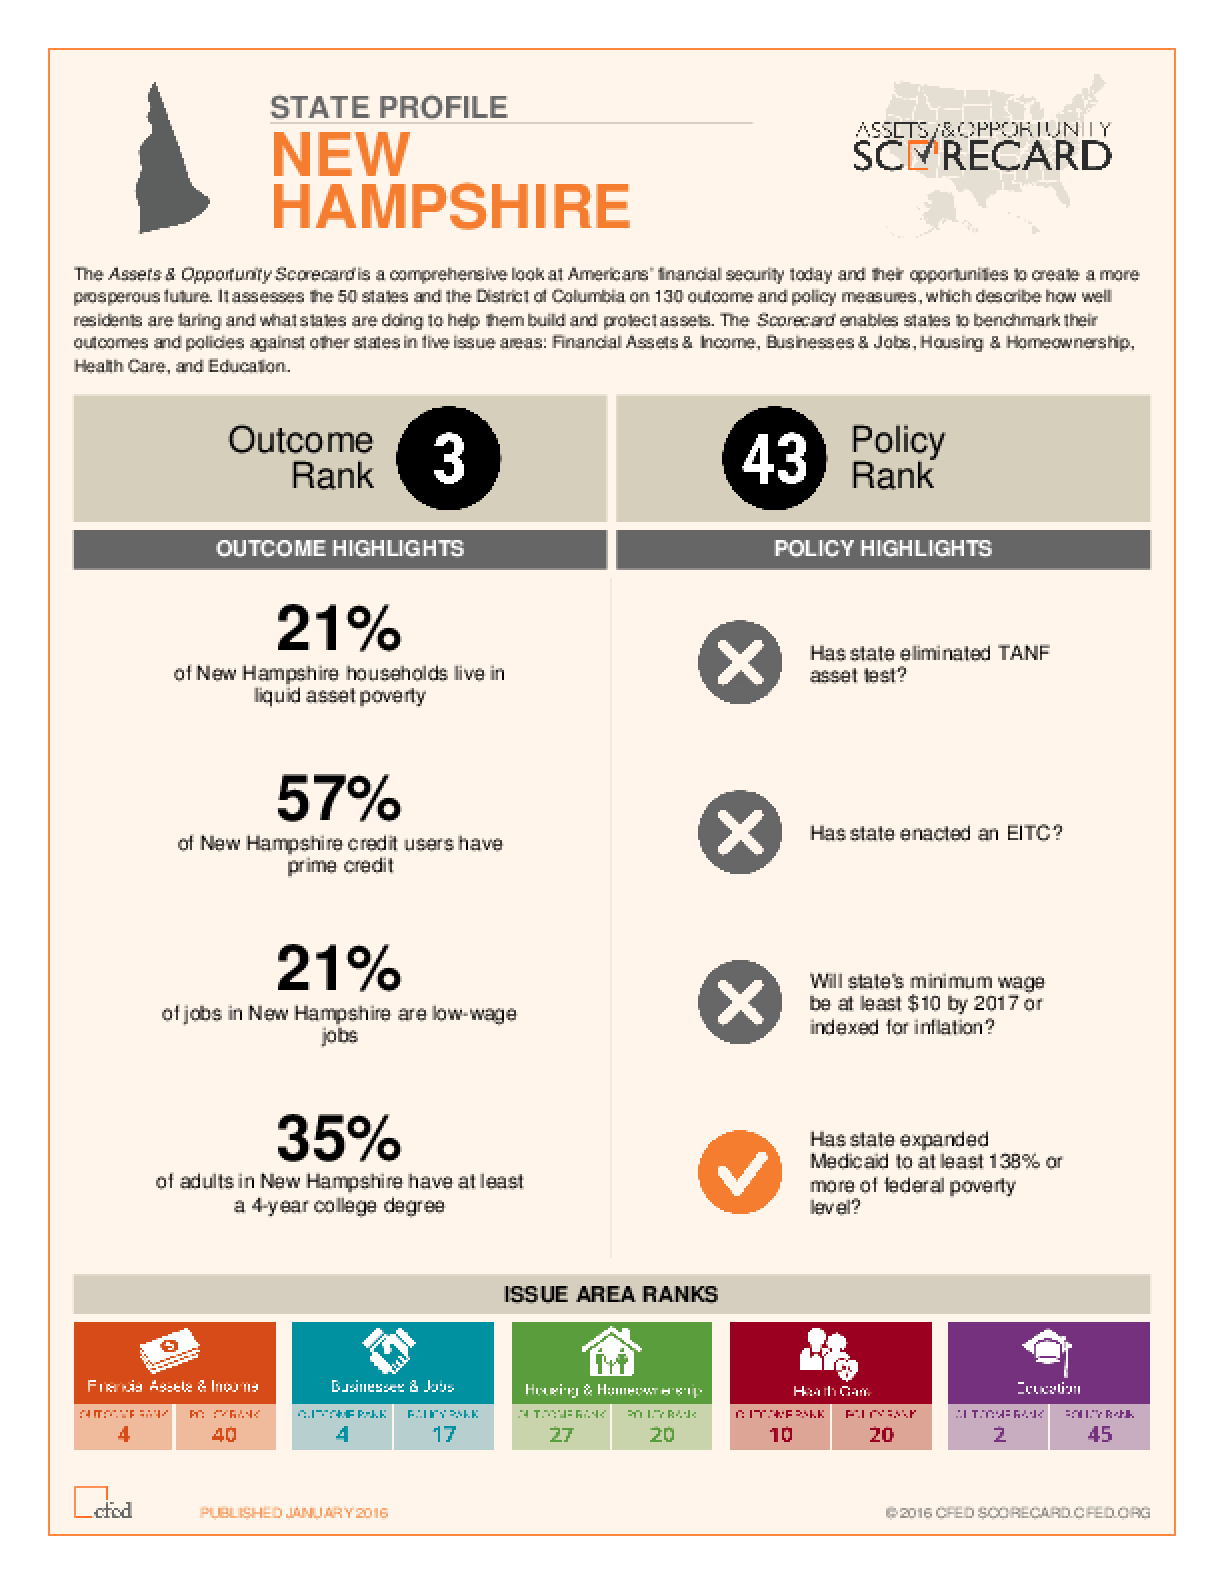 State Profile New Hampshire: Assets and Opportunity Scorecard